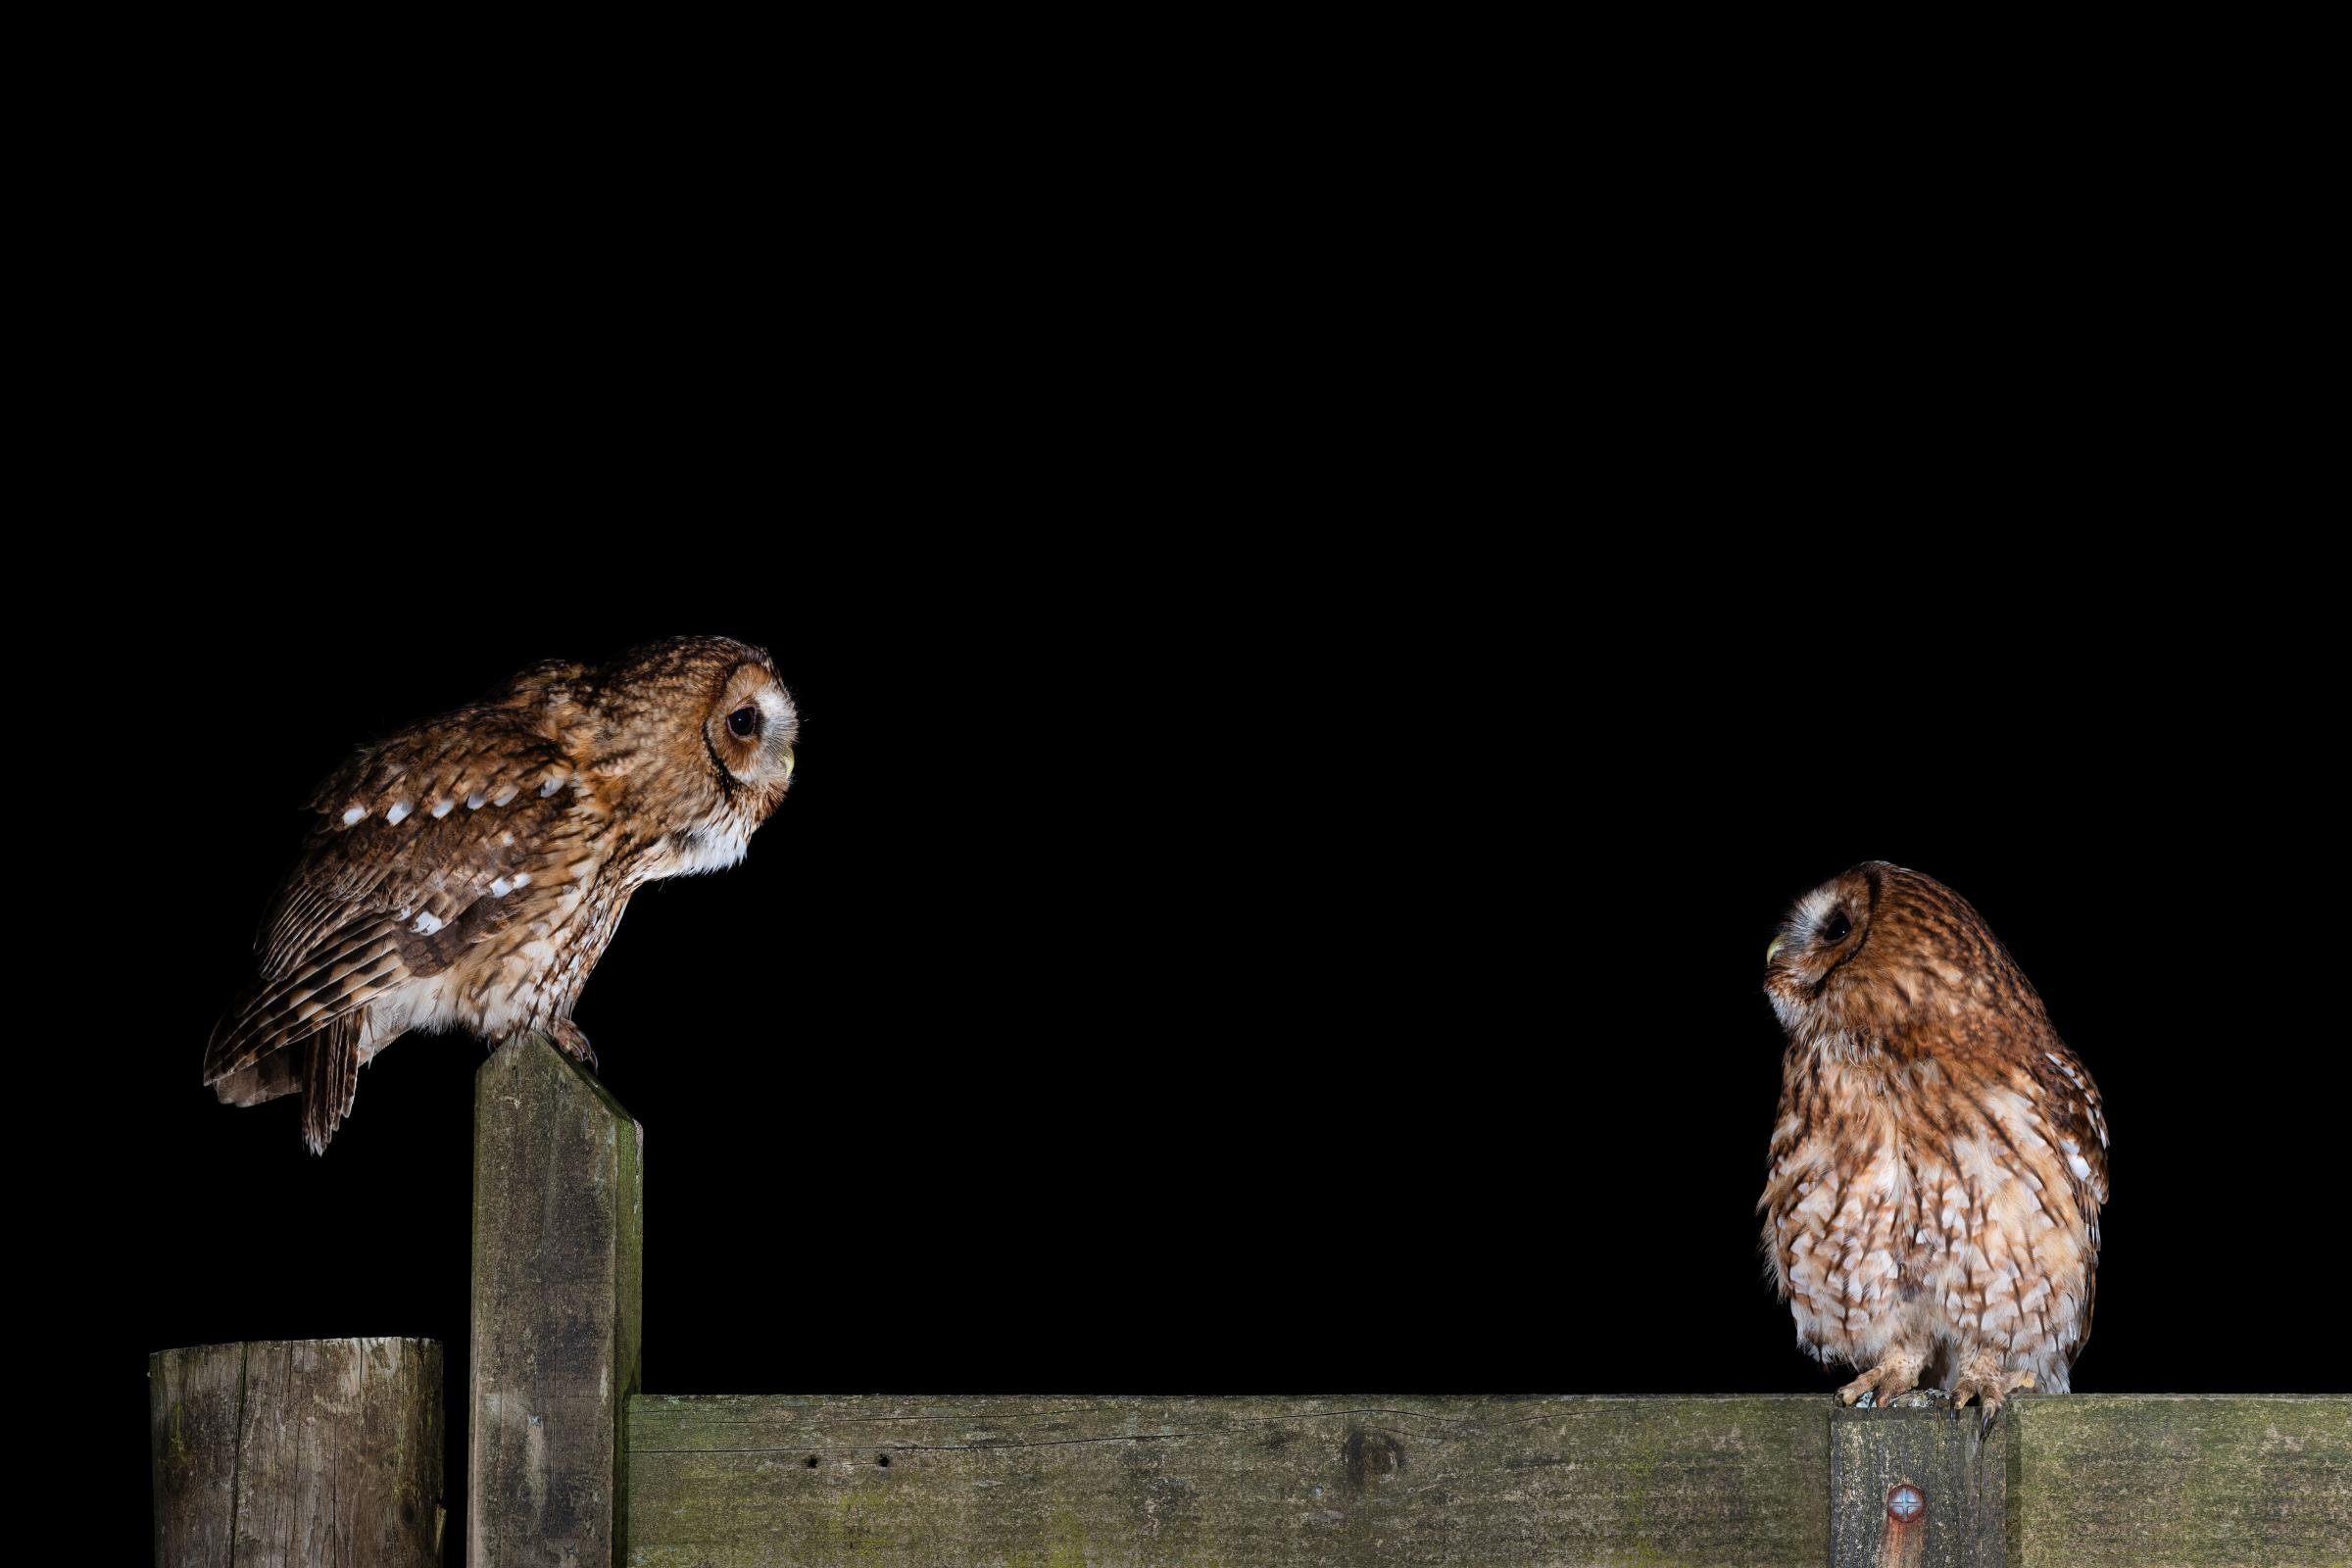 The British Trust for Ormithology has asked the public tlisten out for tawny owls. Picture: Laurence Liddy